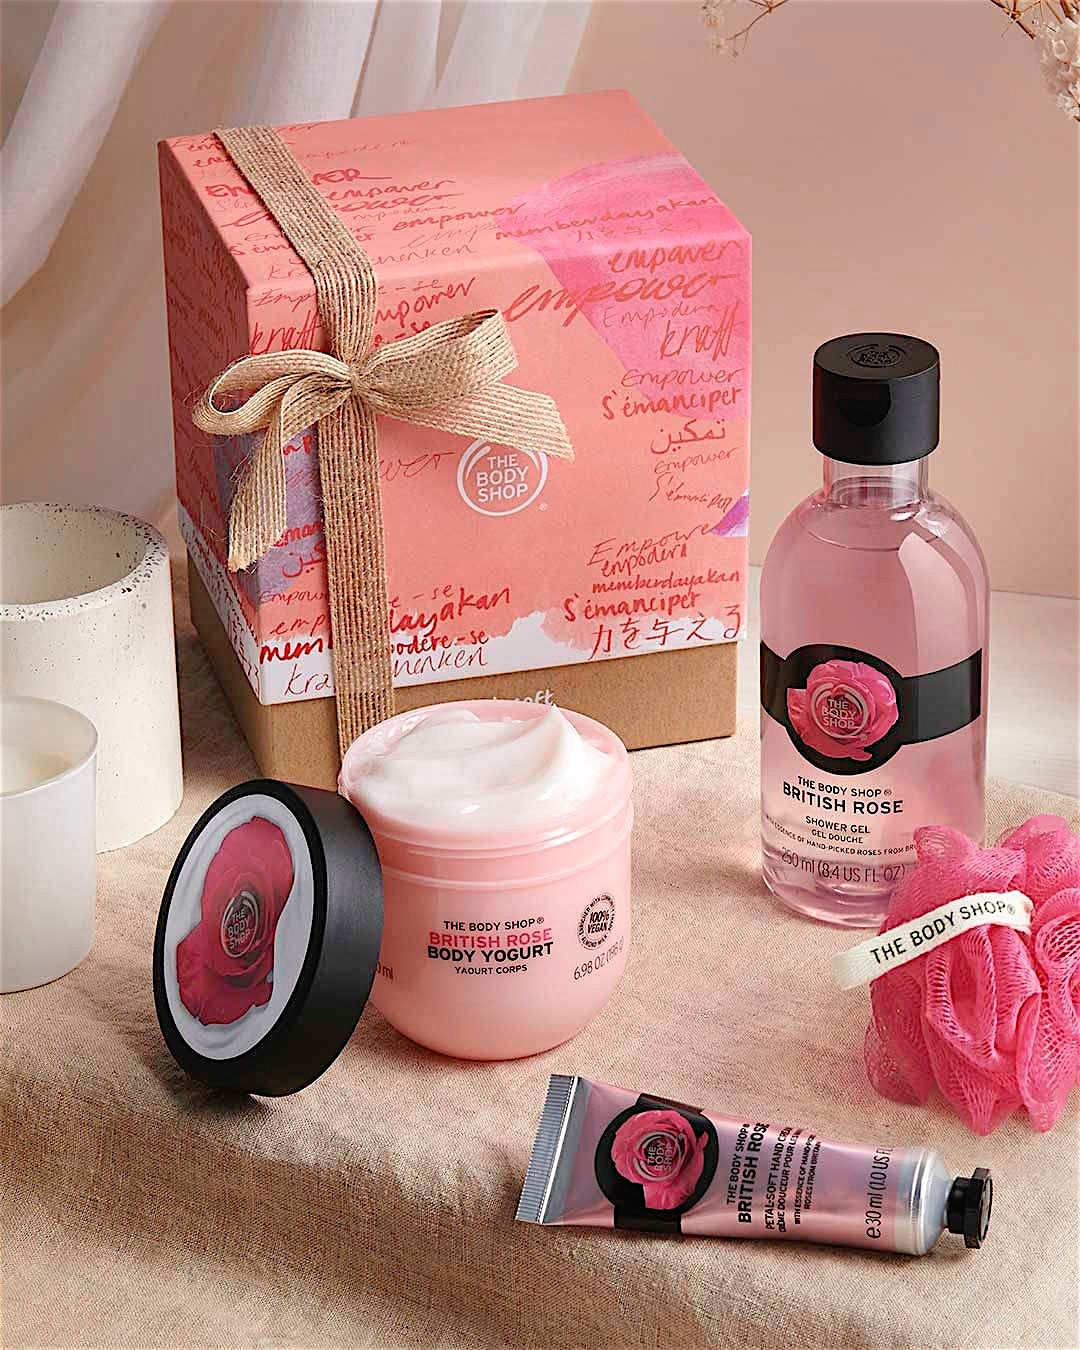 A pink and black bottle of shower gel and a pink tub of body yogurt are laid in front of a pretty pink box.